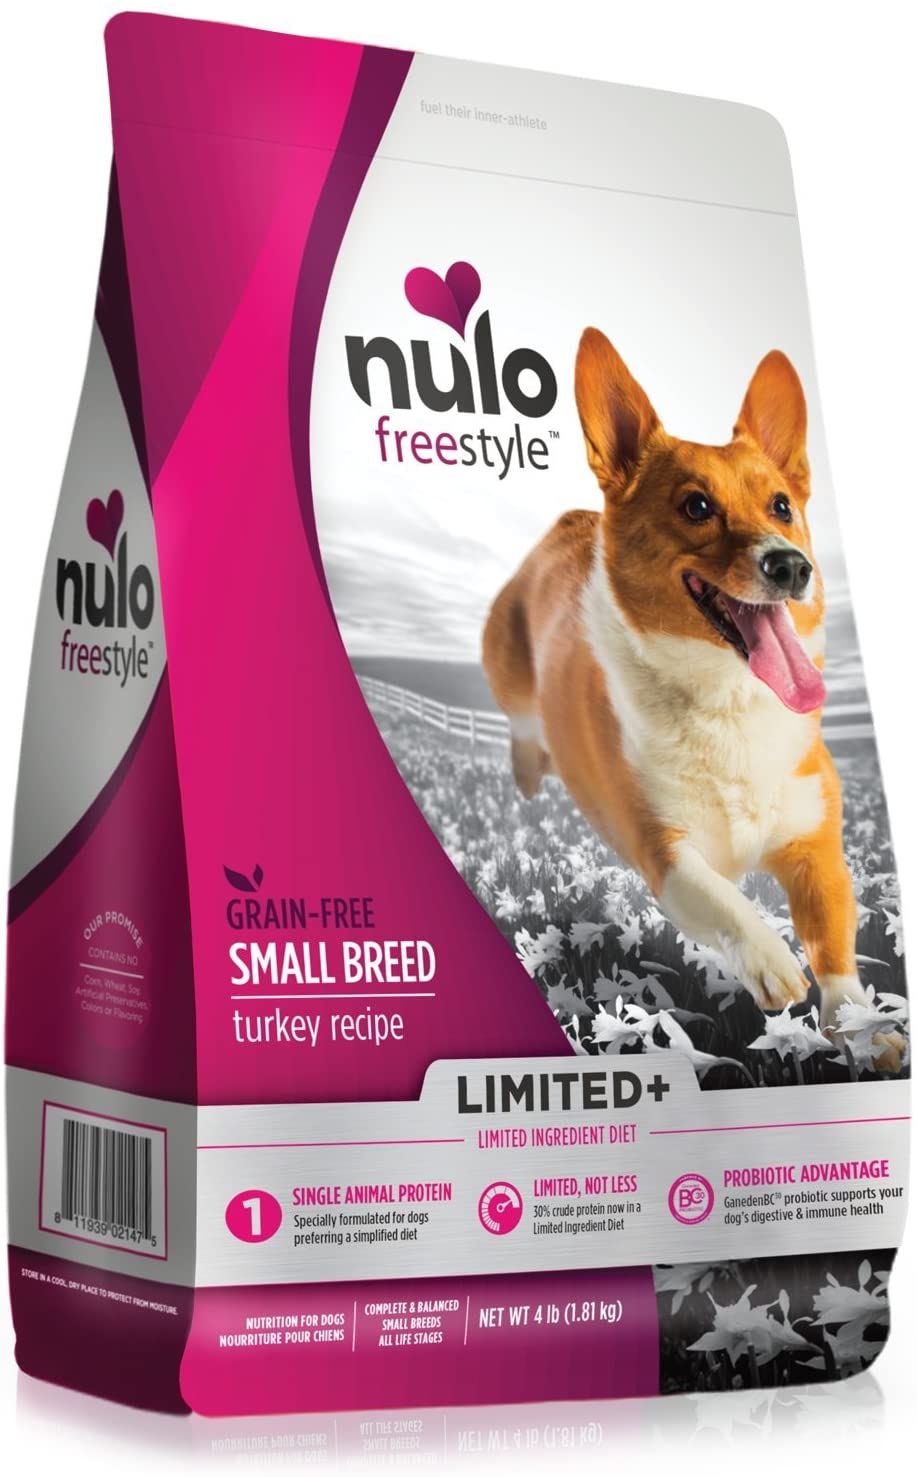 Nulo Puppy Adult Small Breed Freestyle Limited Plus Grain Free Dry Dog Food All Natural Limited Ingredient Diet for Digestive Immune Health – Allergy Sensitive Non GMO – 4.5, 11, or 24 lb Bag